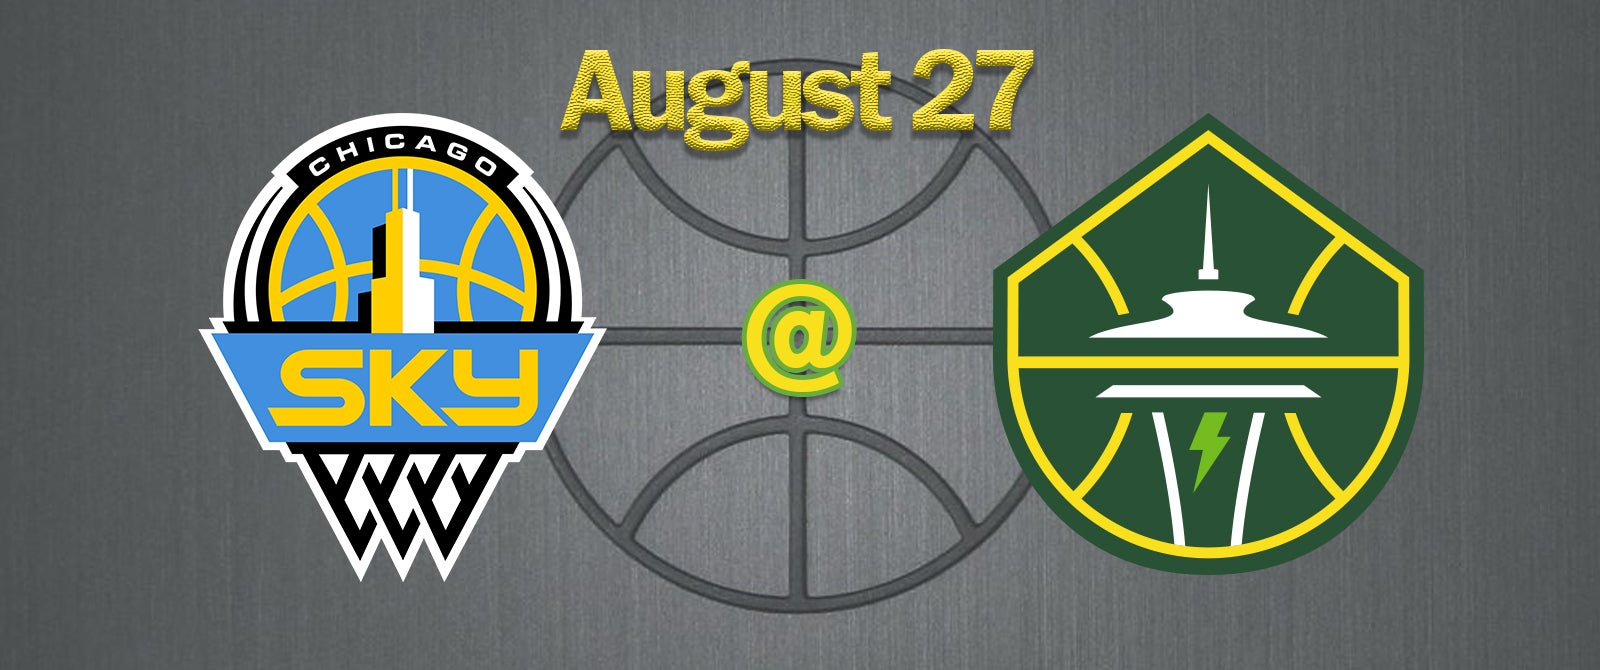 Chicago Sky @ Seattle Storm